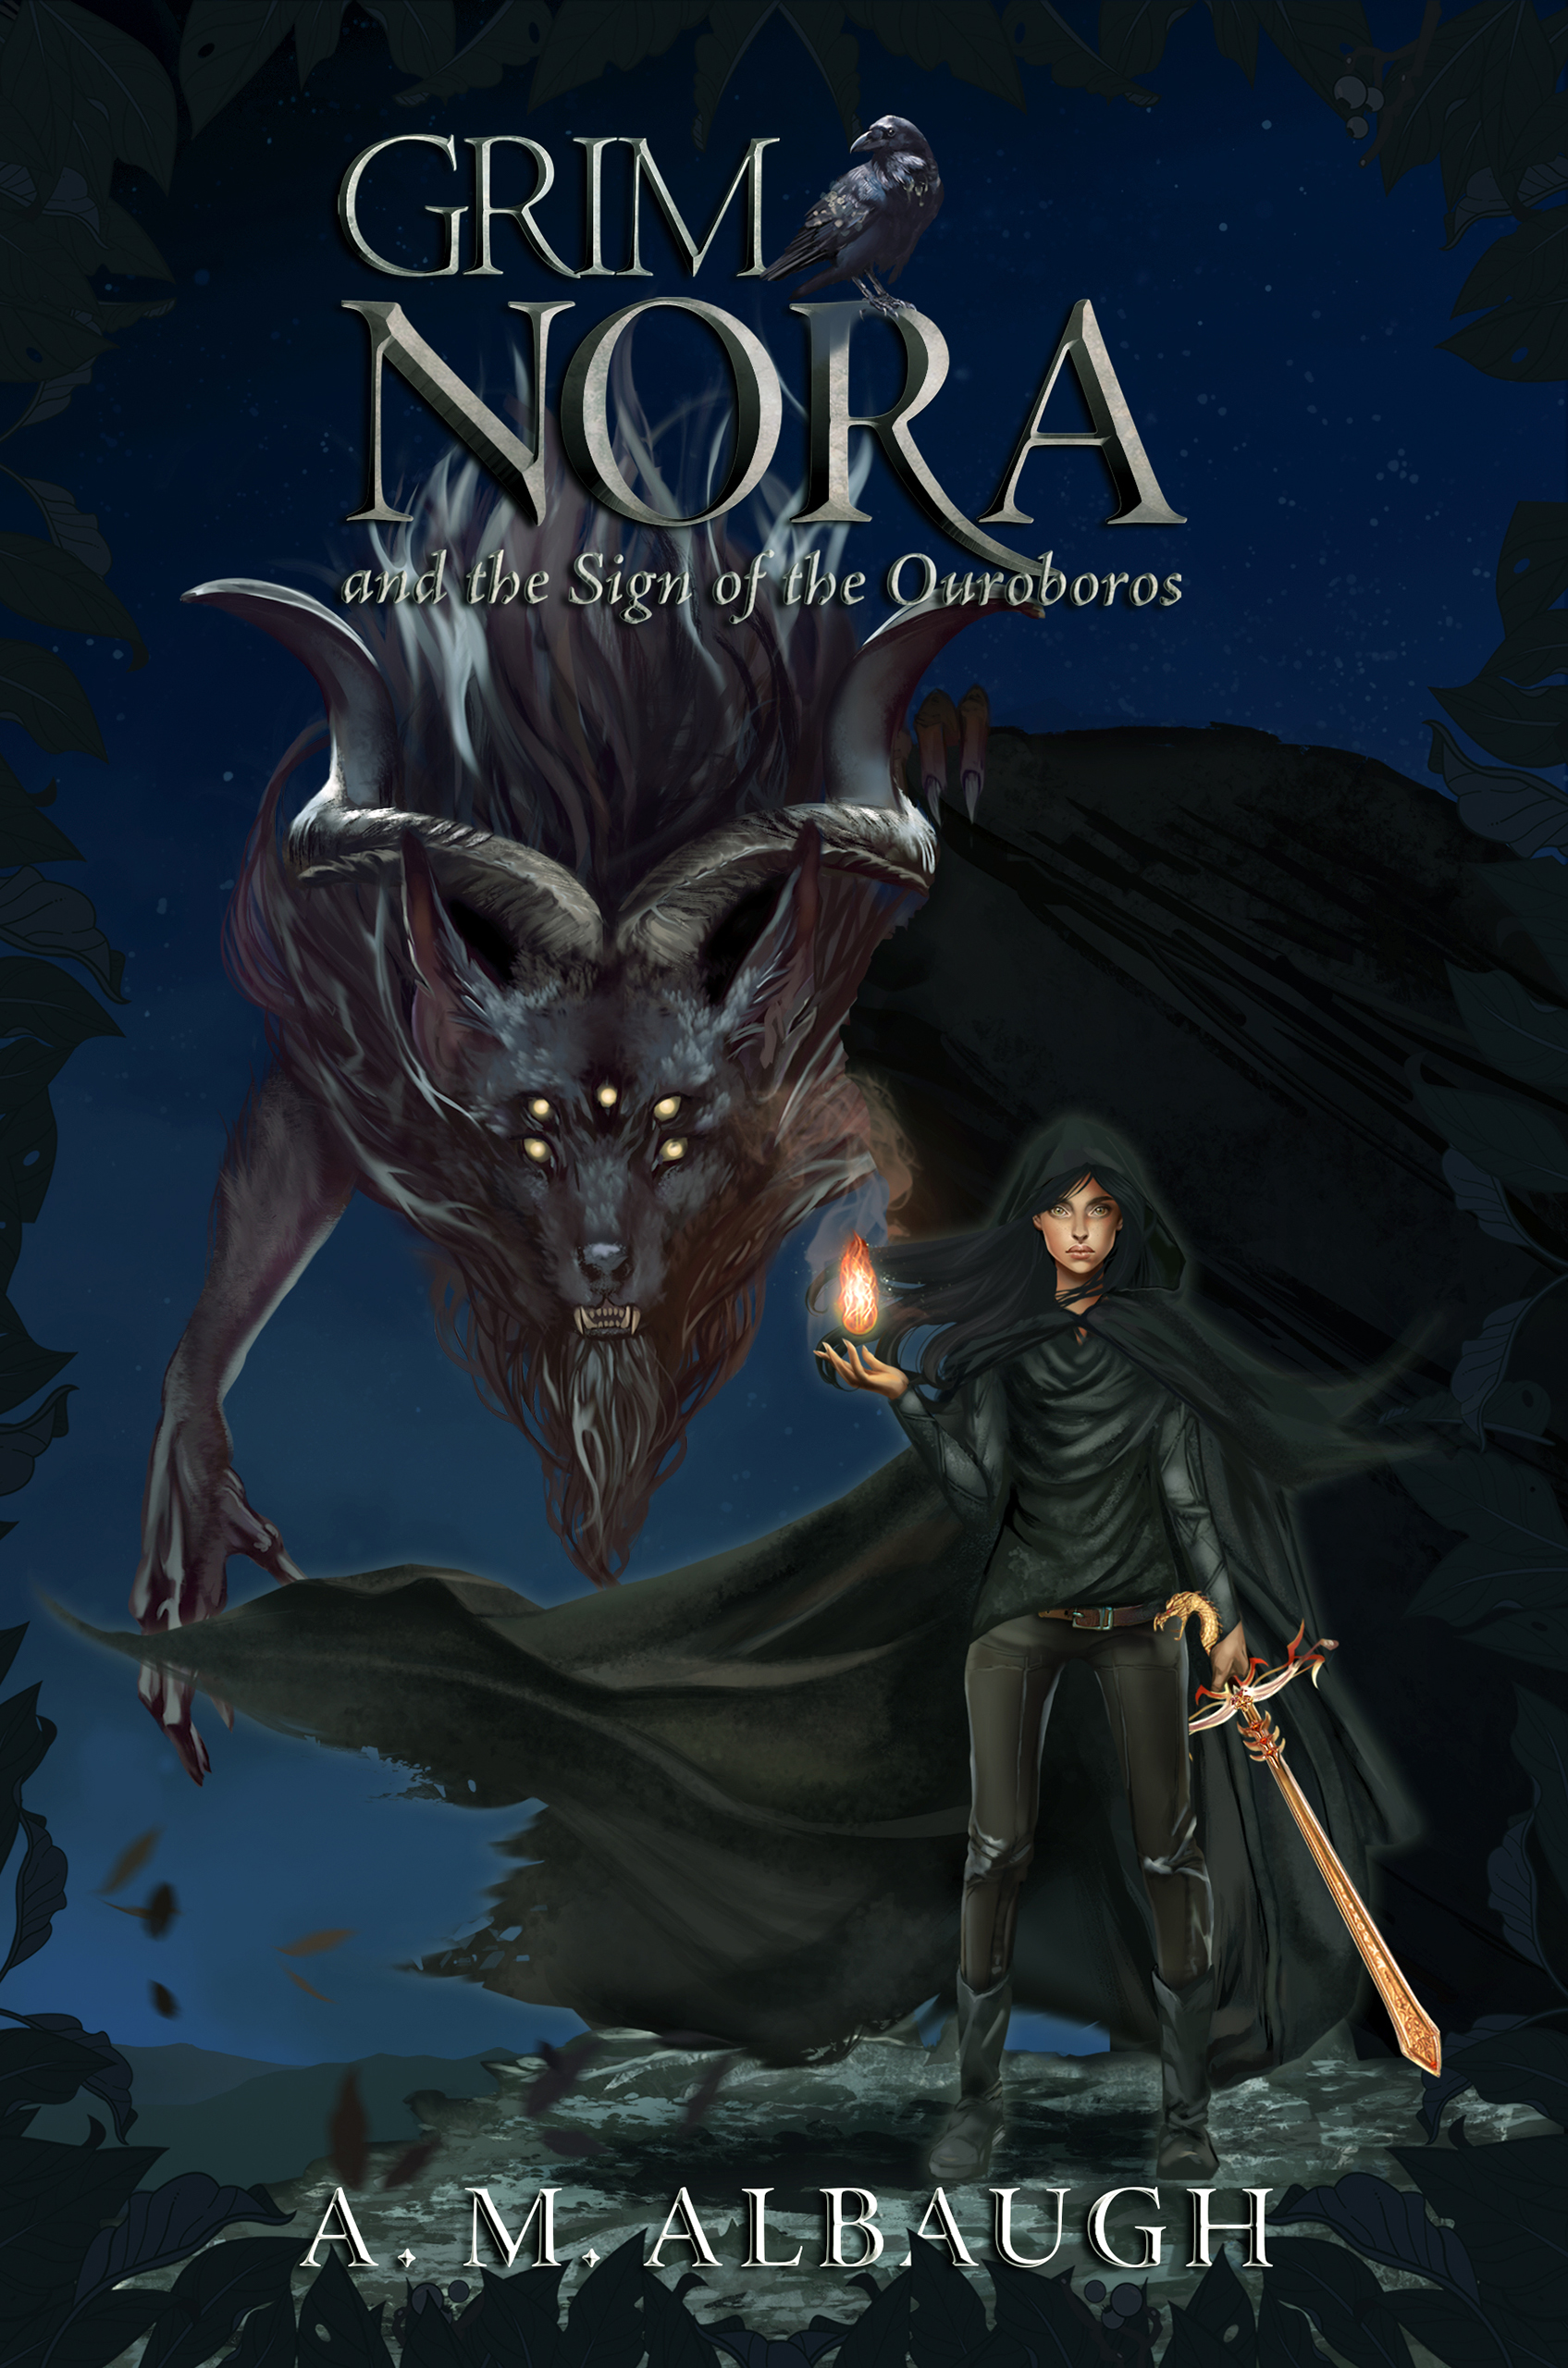 Grim Nora and the Sign of the Ouroboros